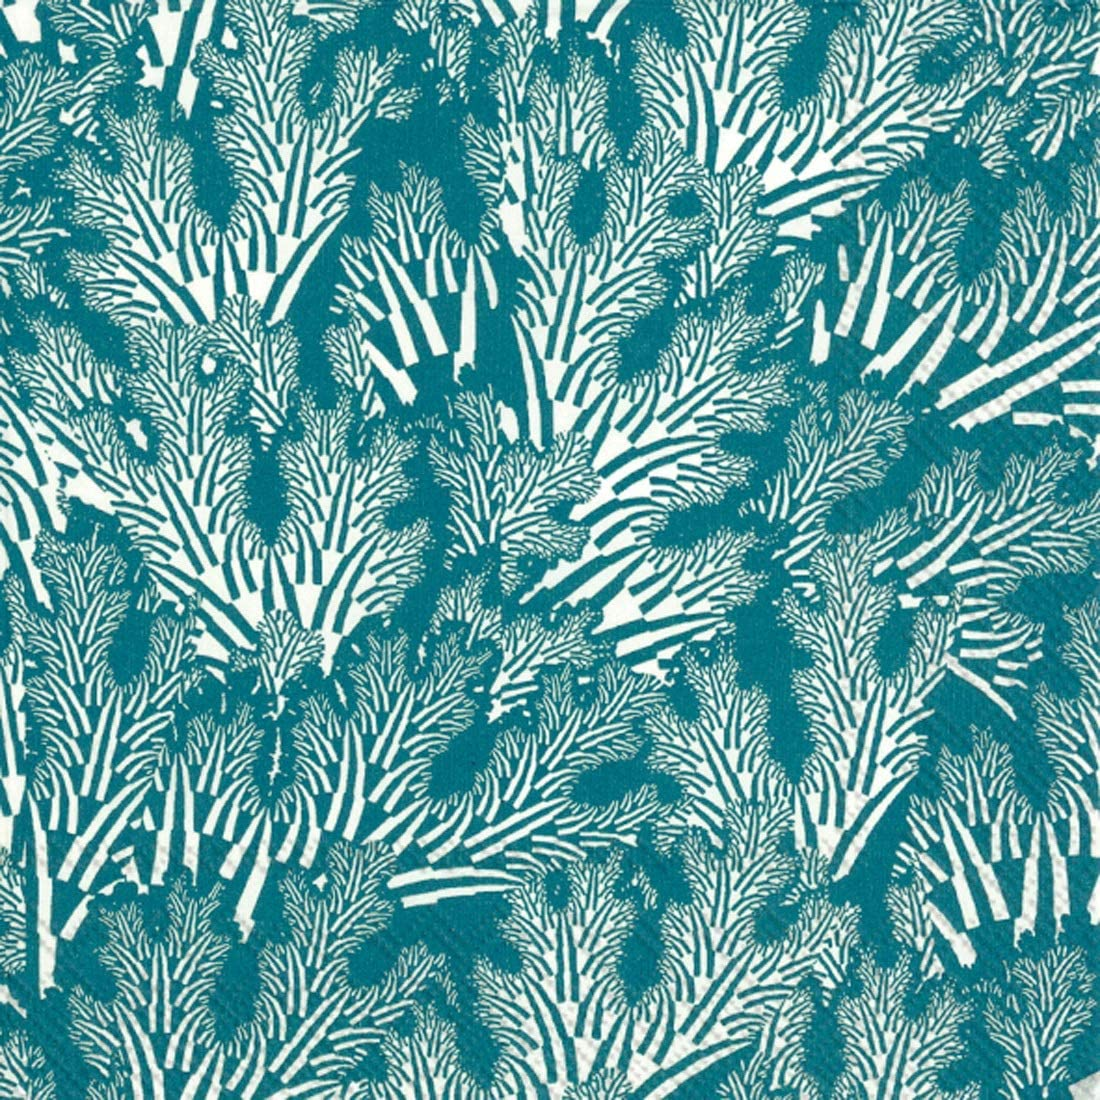 Marimekko Cocktail Napkins Decorative Paper Napkins Teal Blue Party Napkins Beverage 5